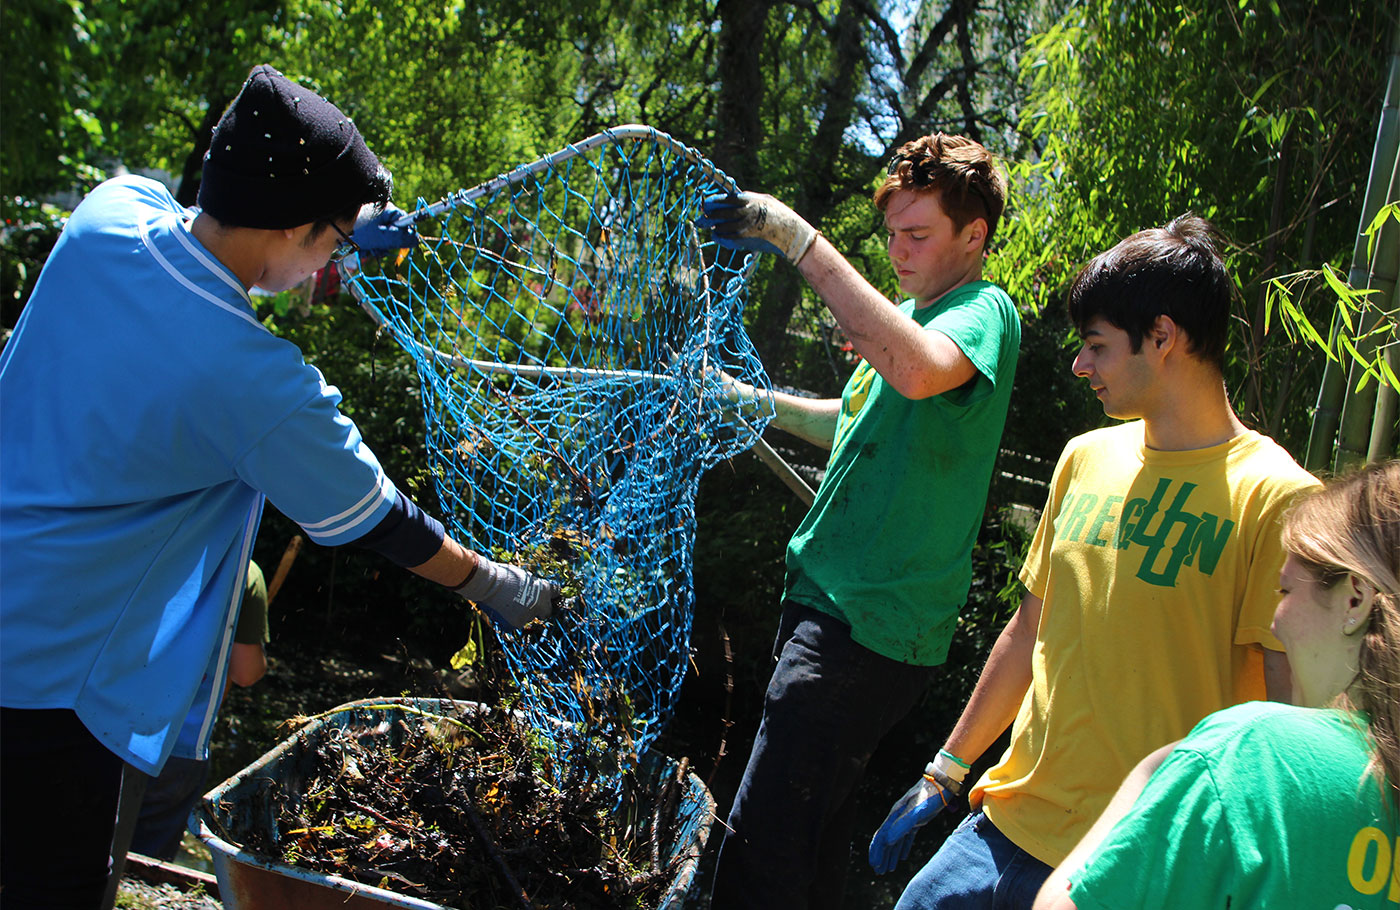 Four students removing items from a net as they clean up the nearby canal.